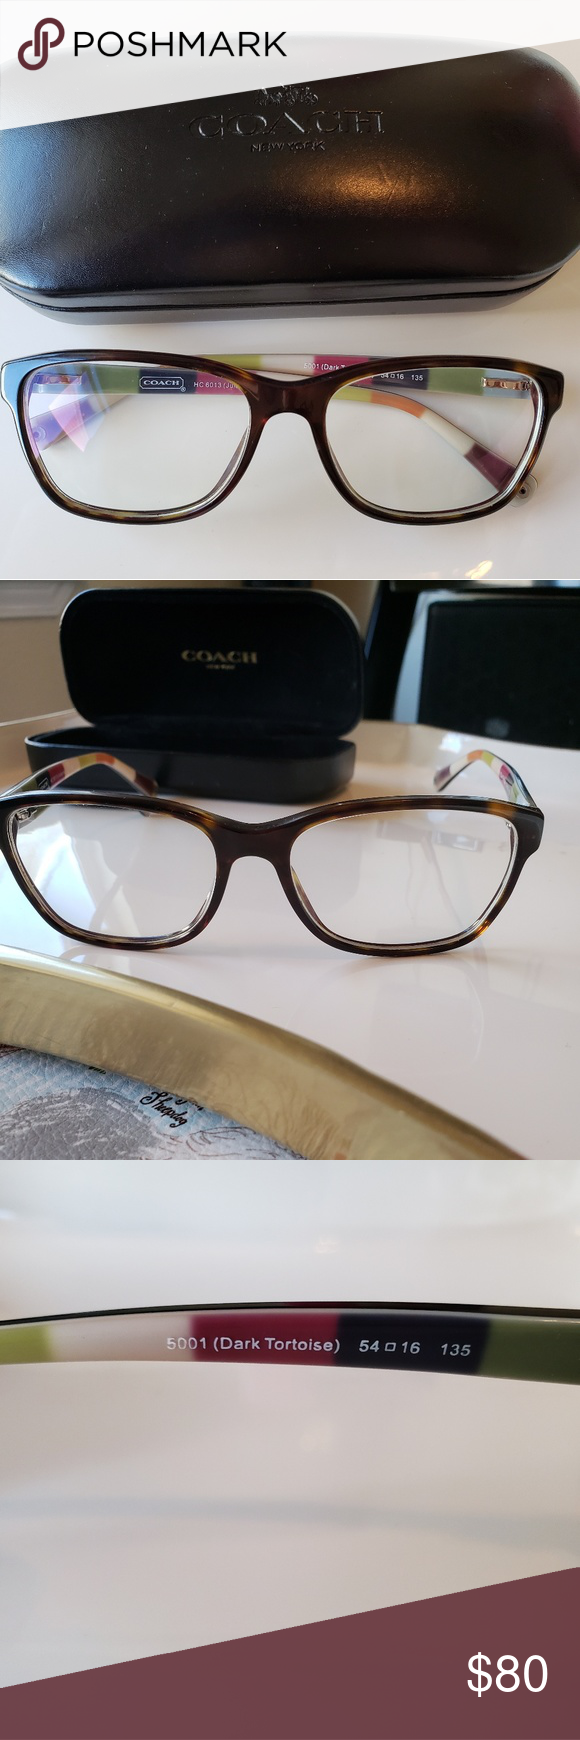 732974584f94d Coach HC 6013 Julayne Glasses in Dark Tortoise Classic style frame in Brown  are perfect for any outfit. These are used and the lens is my old  prescription ...